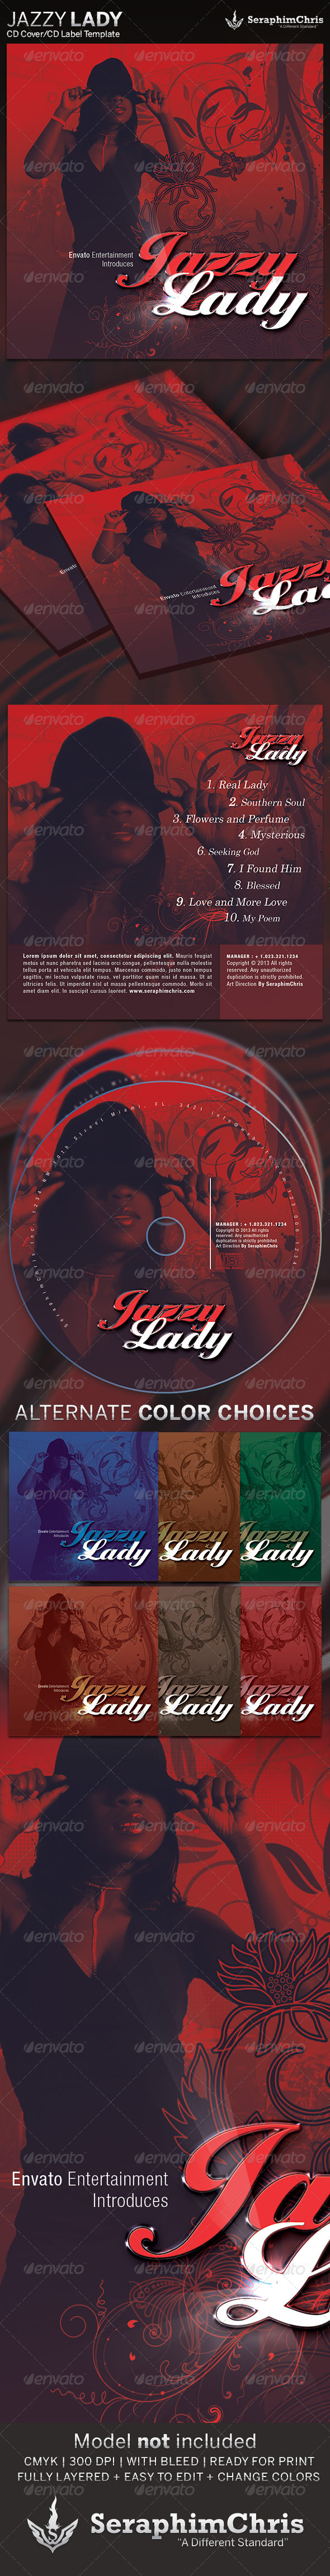 GraphicRiver Jazzy Lady CD Cover Artwork Template 4245899